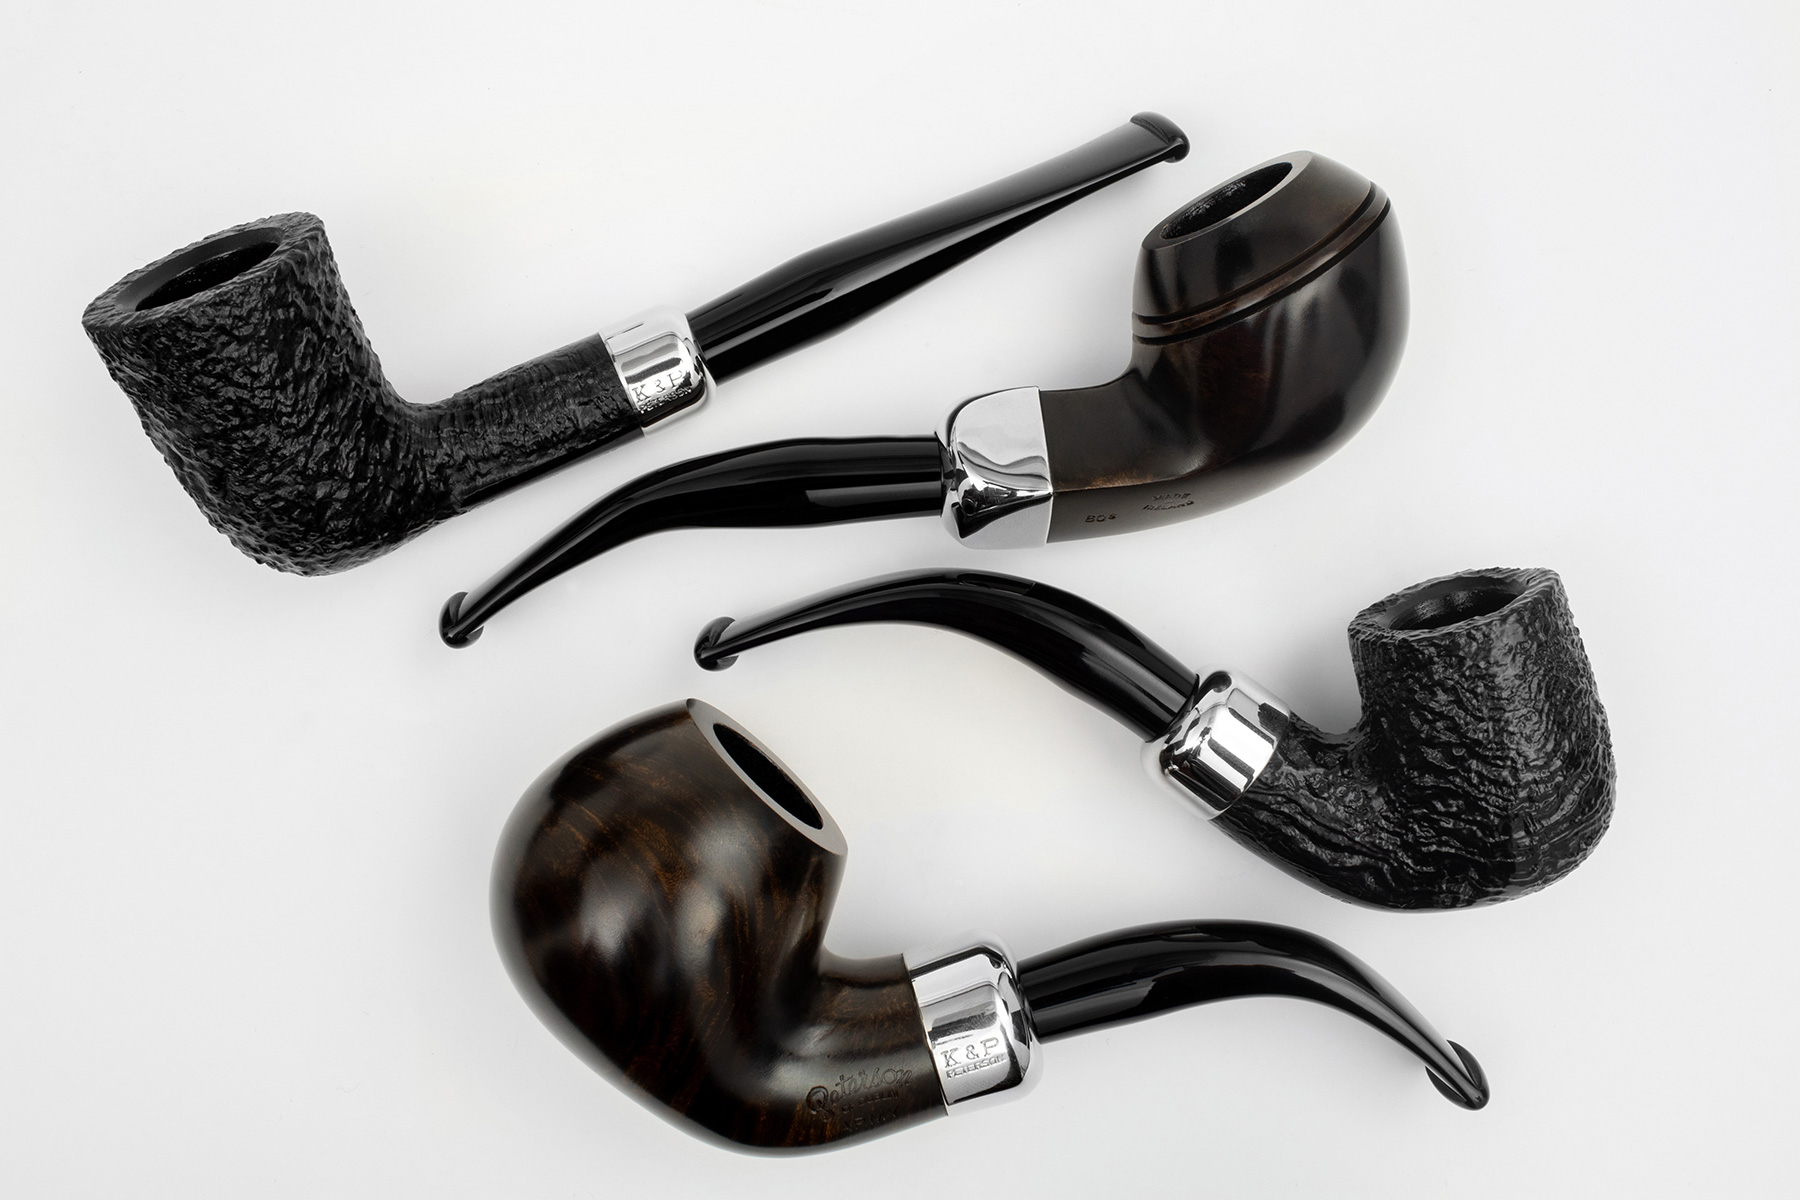 239. The New Army Filter Line and A Look Back at K&P's Filter Pipe History